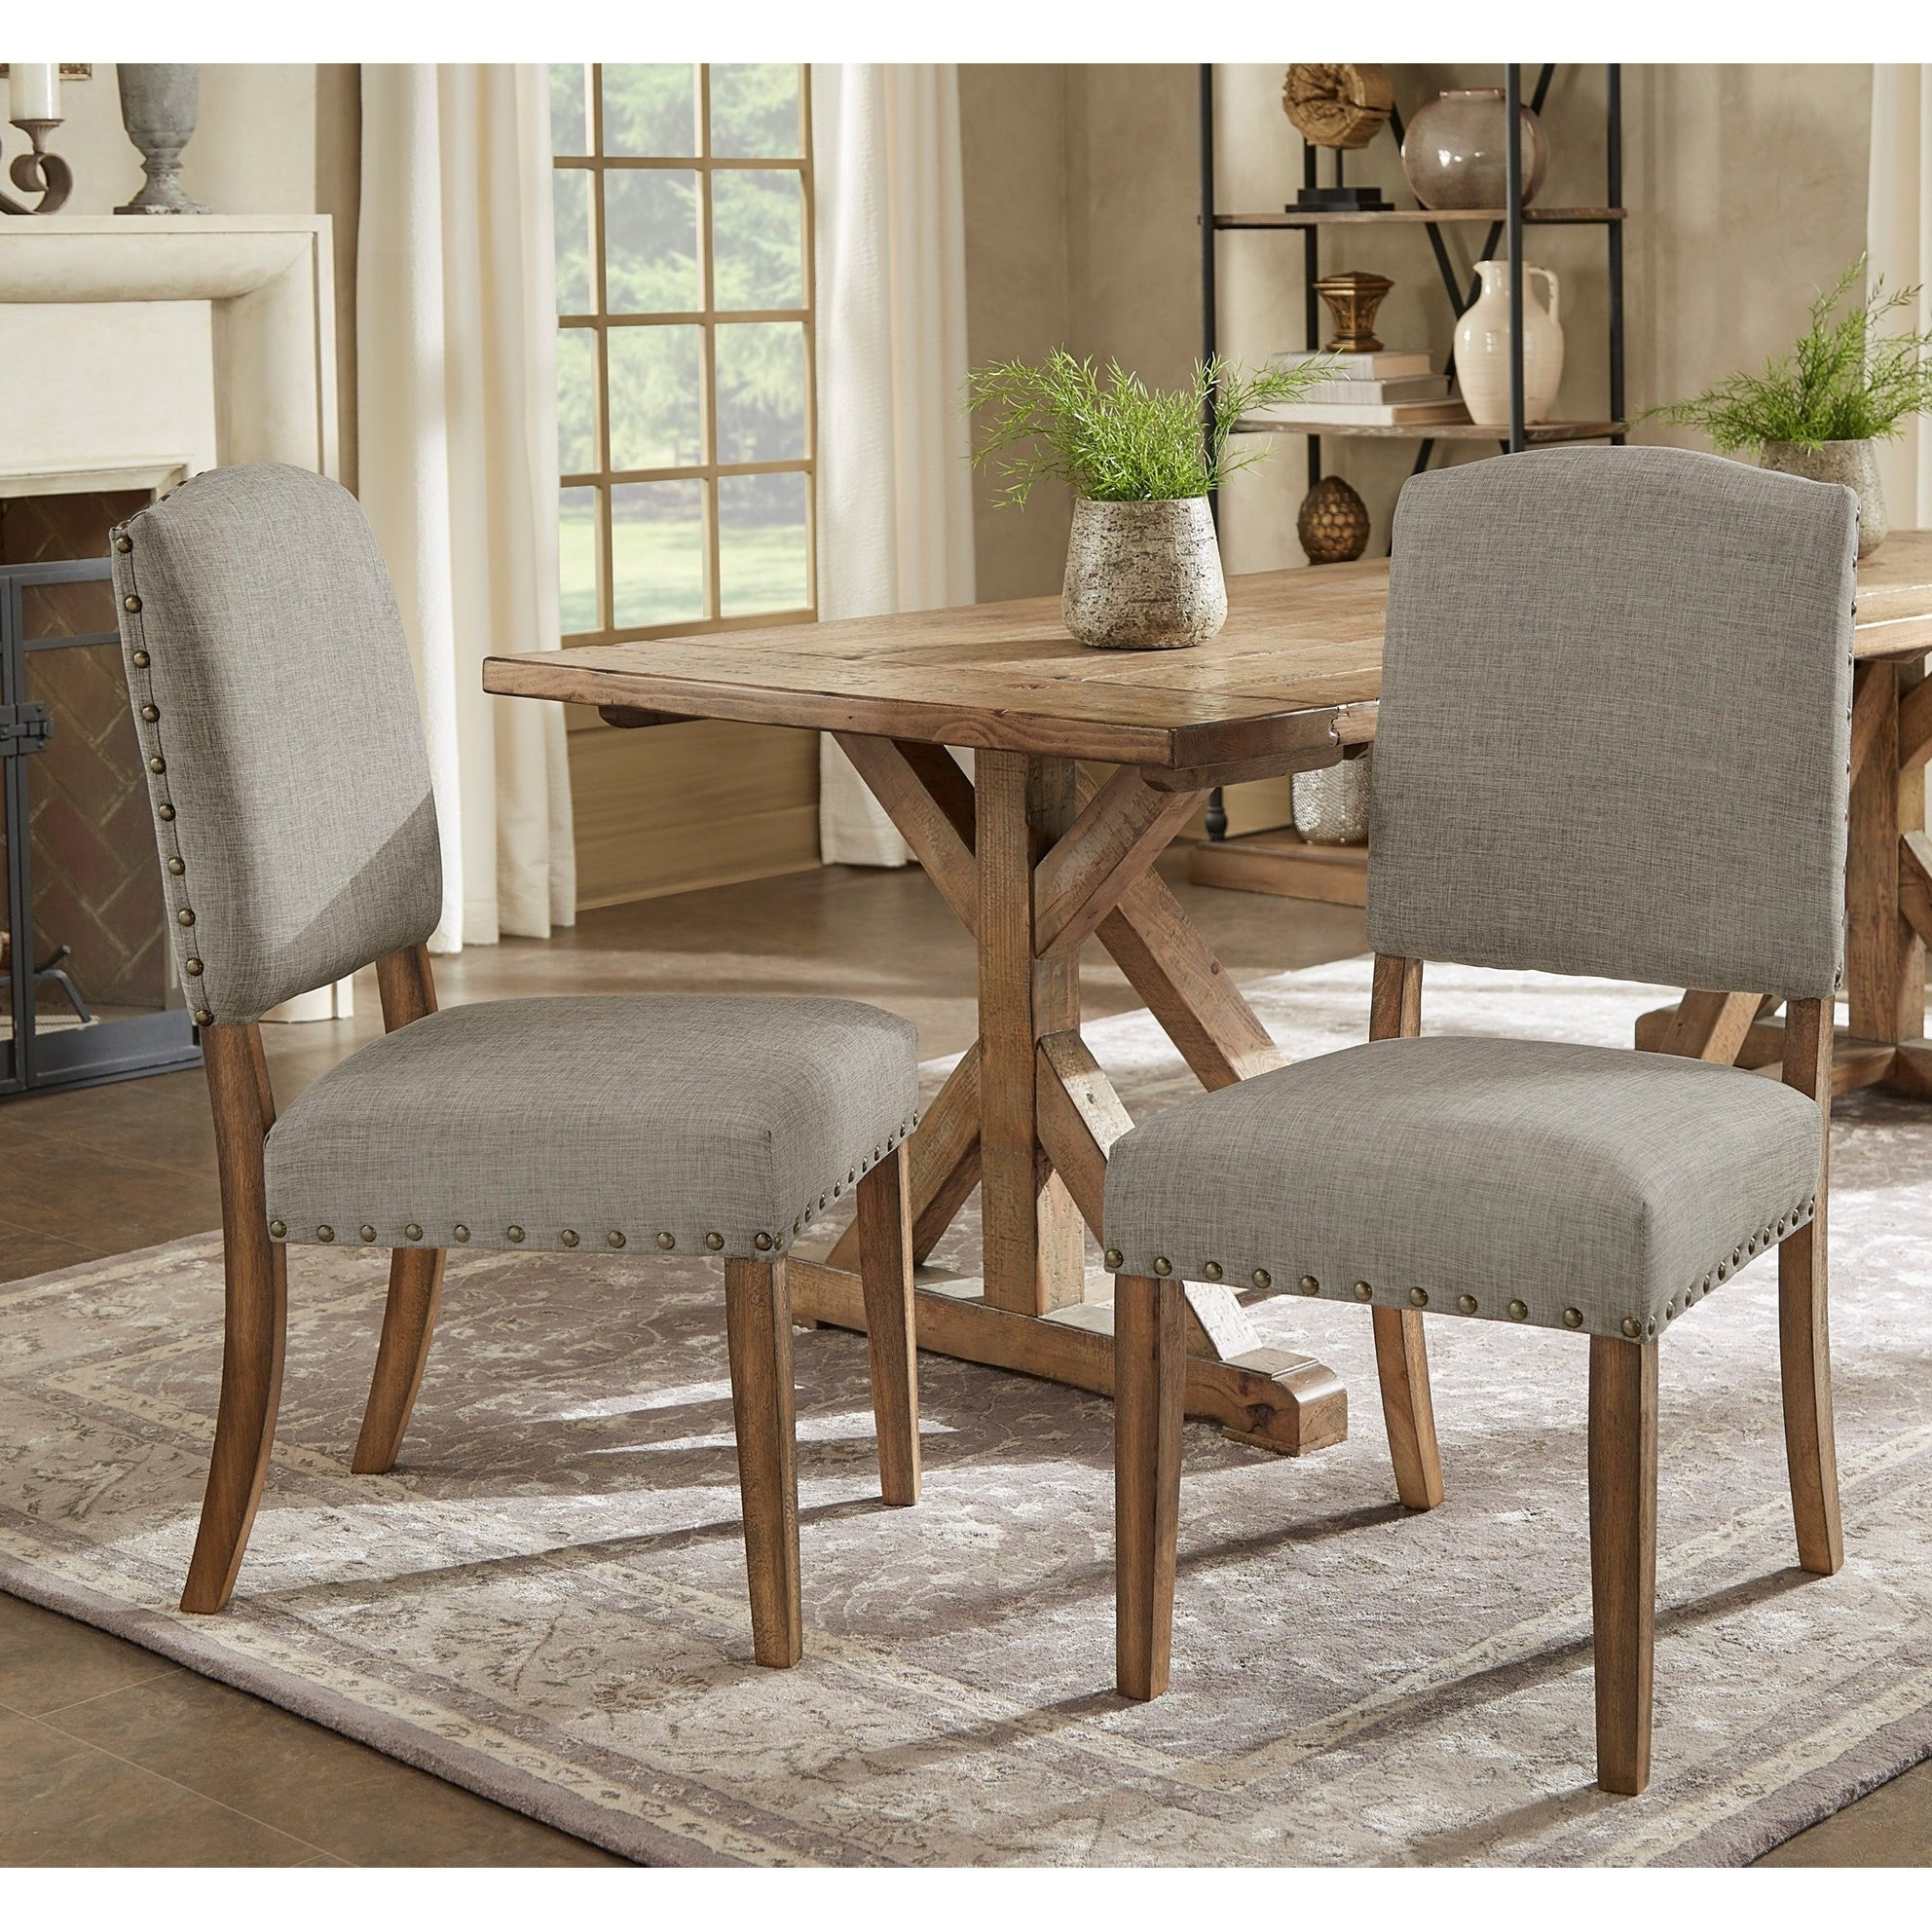 Shop Benchwright Premium Nailhead Upholstered Dining Chairs (Set Of Inside Most Up To Date Candice Ii 5 Piece Round Dining Sets With Slat Back Side Chairs (View 7 of 20)